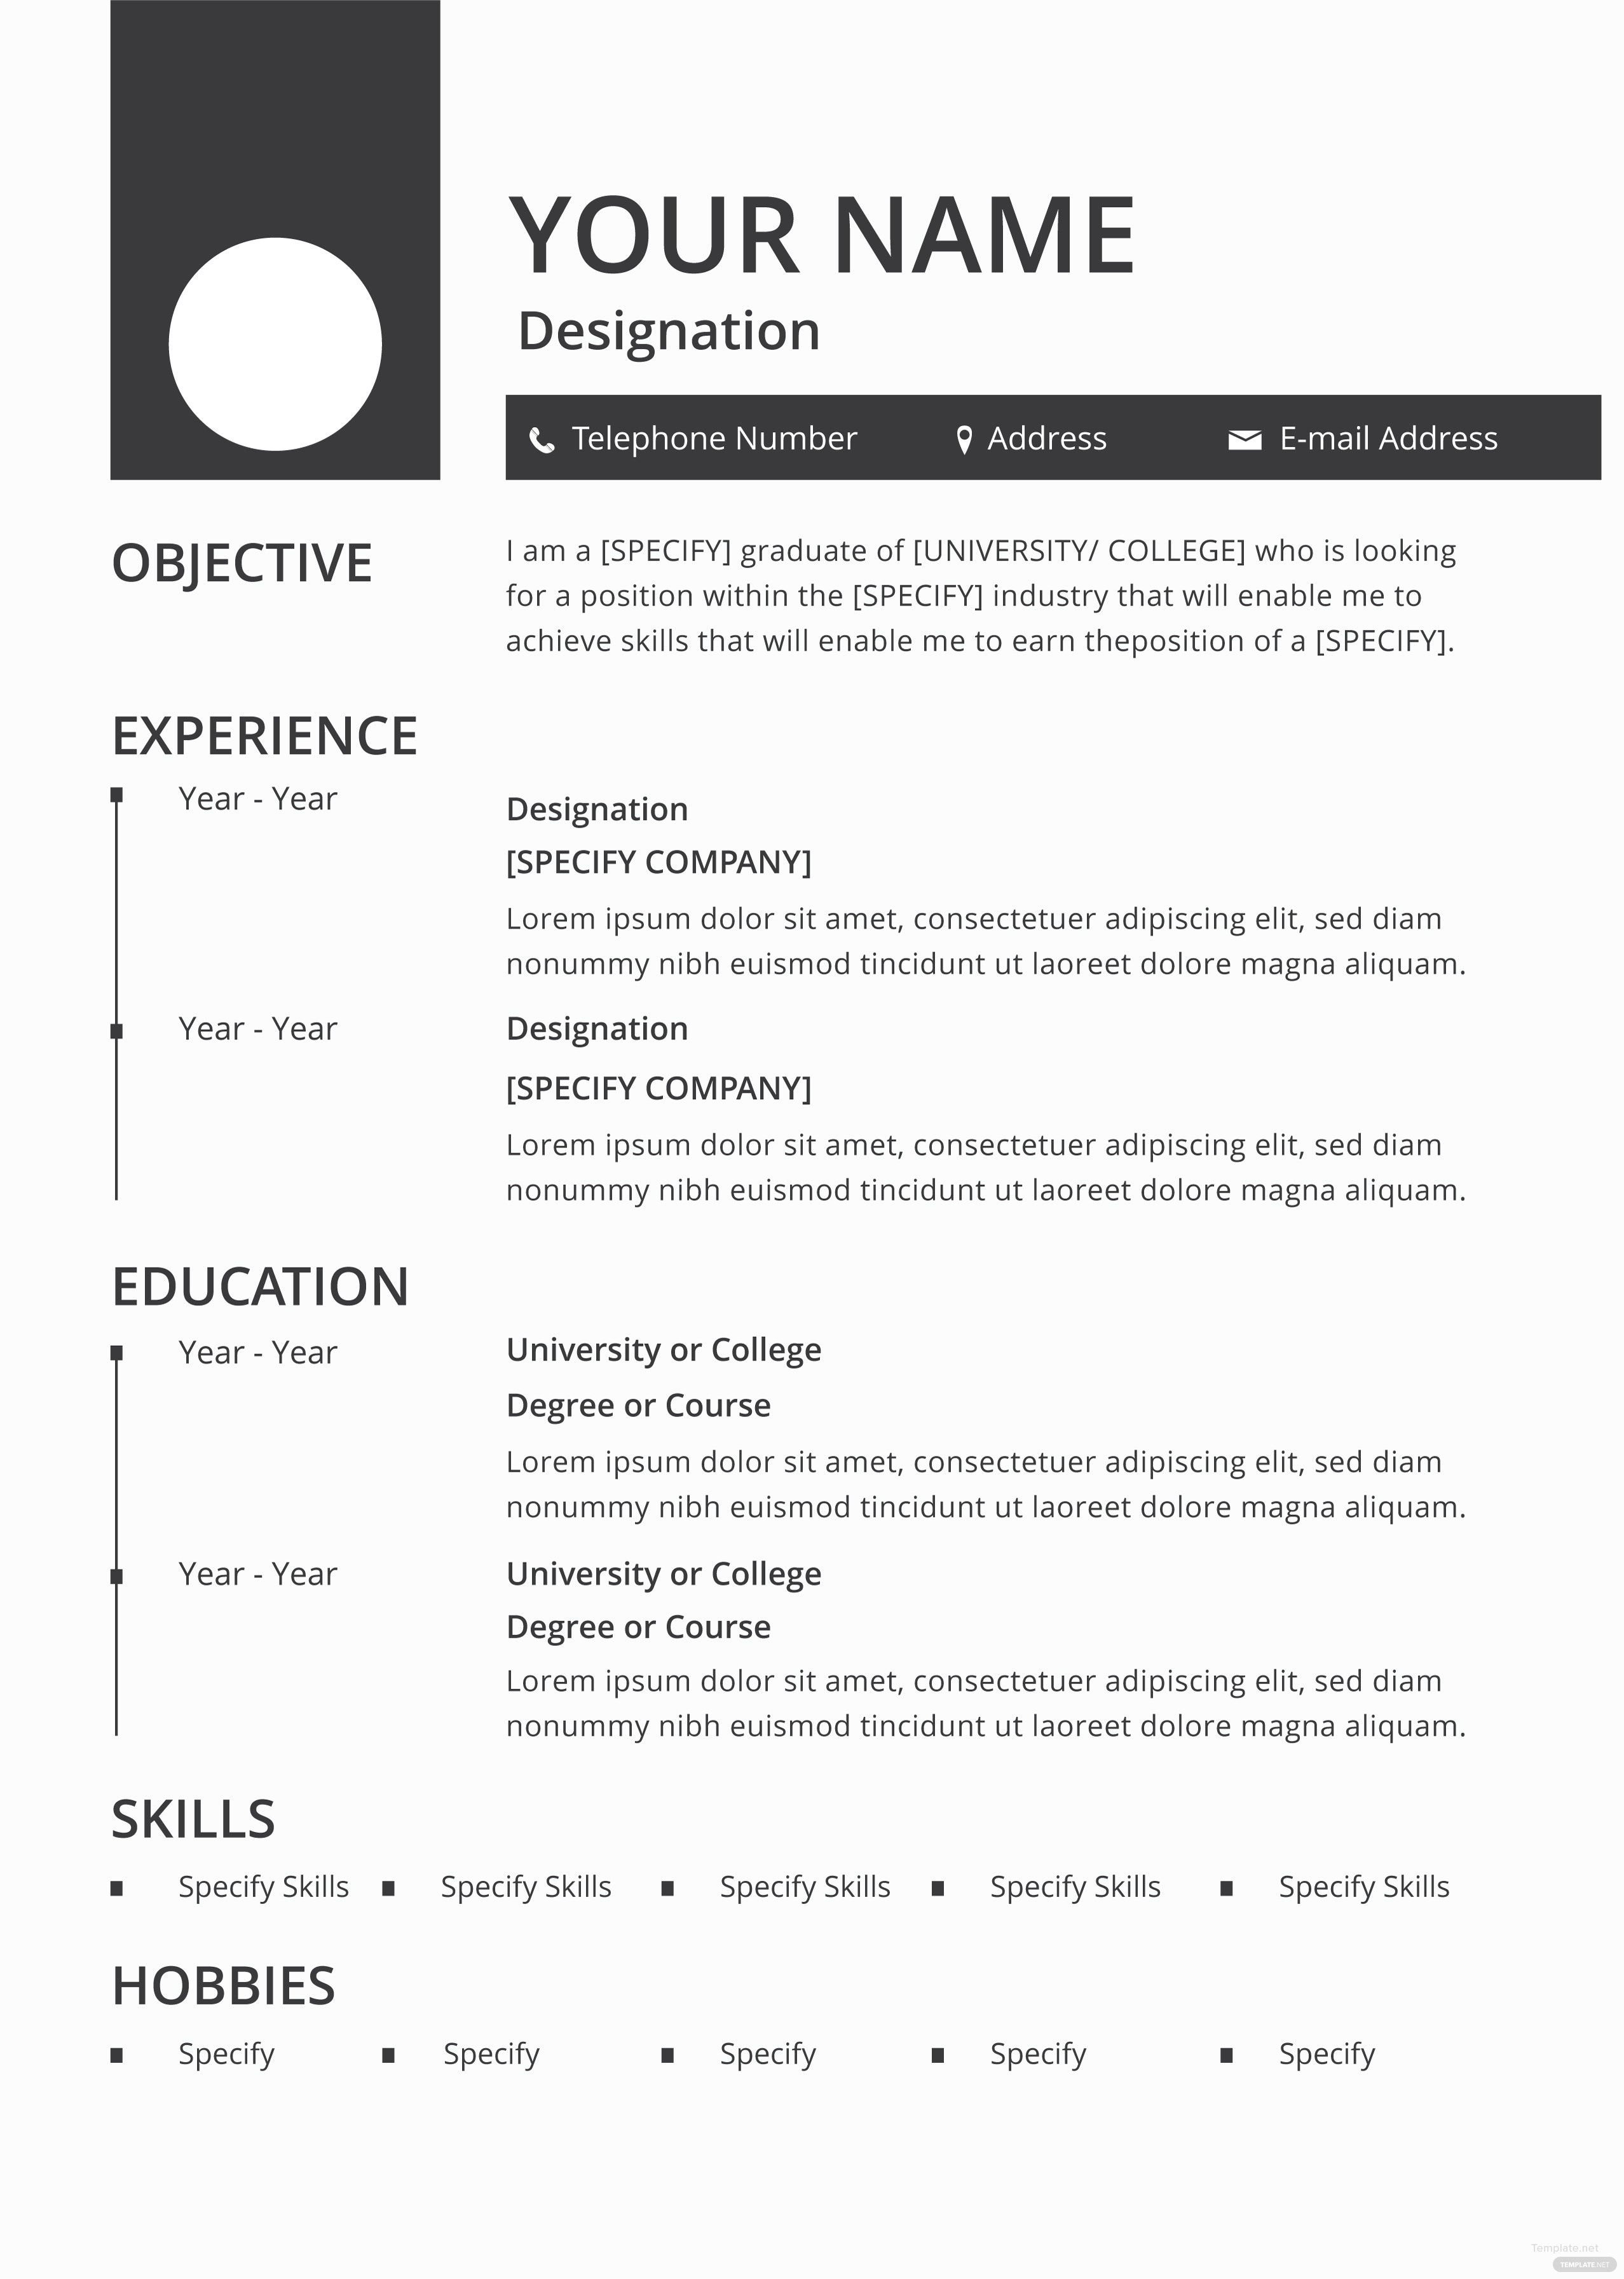 Free Blank Resume And Cv Template In Adobe Photoshop Microsoft Word